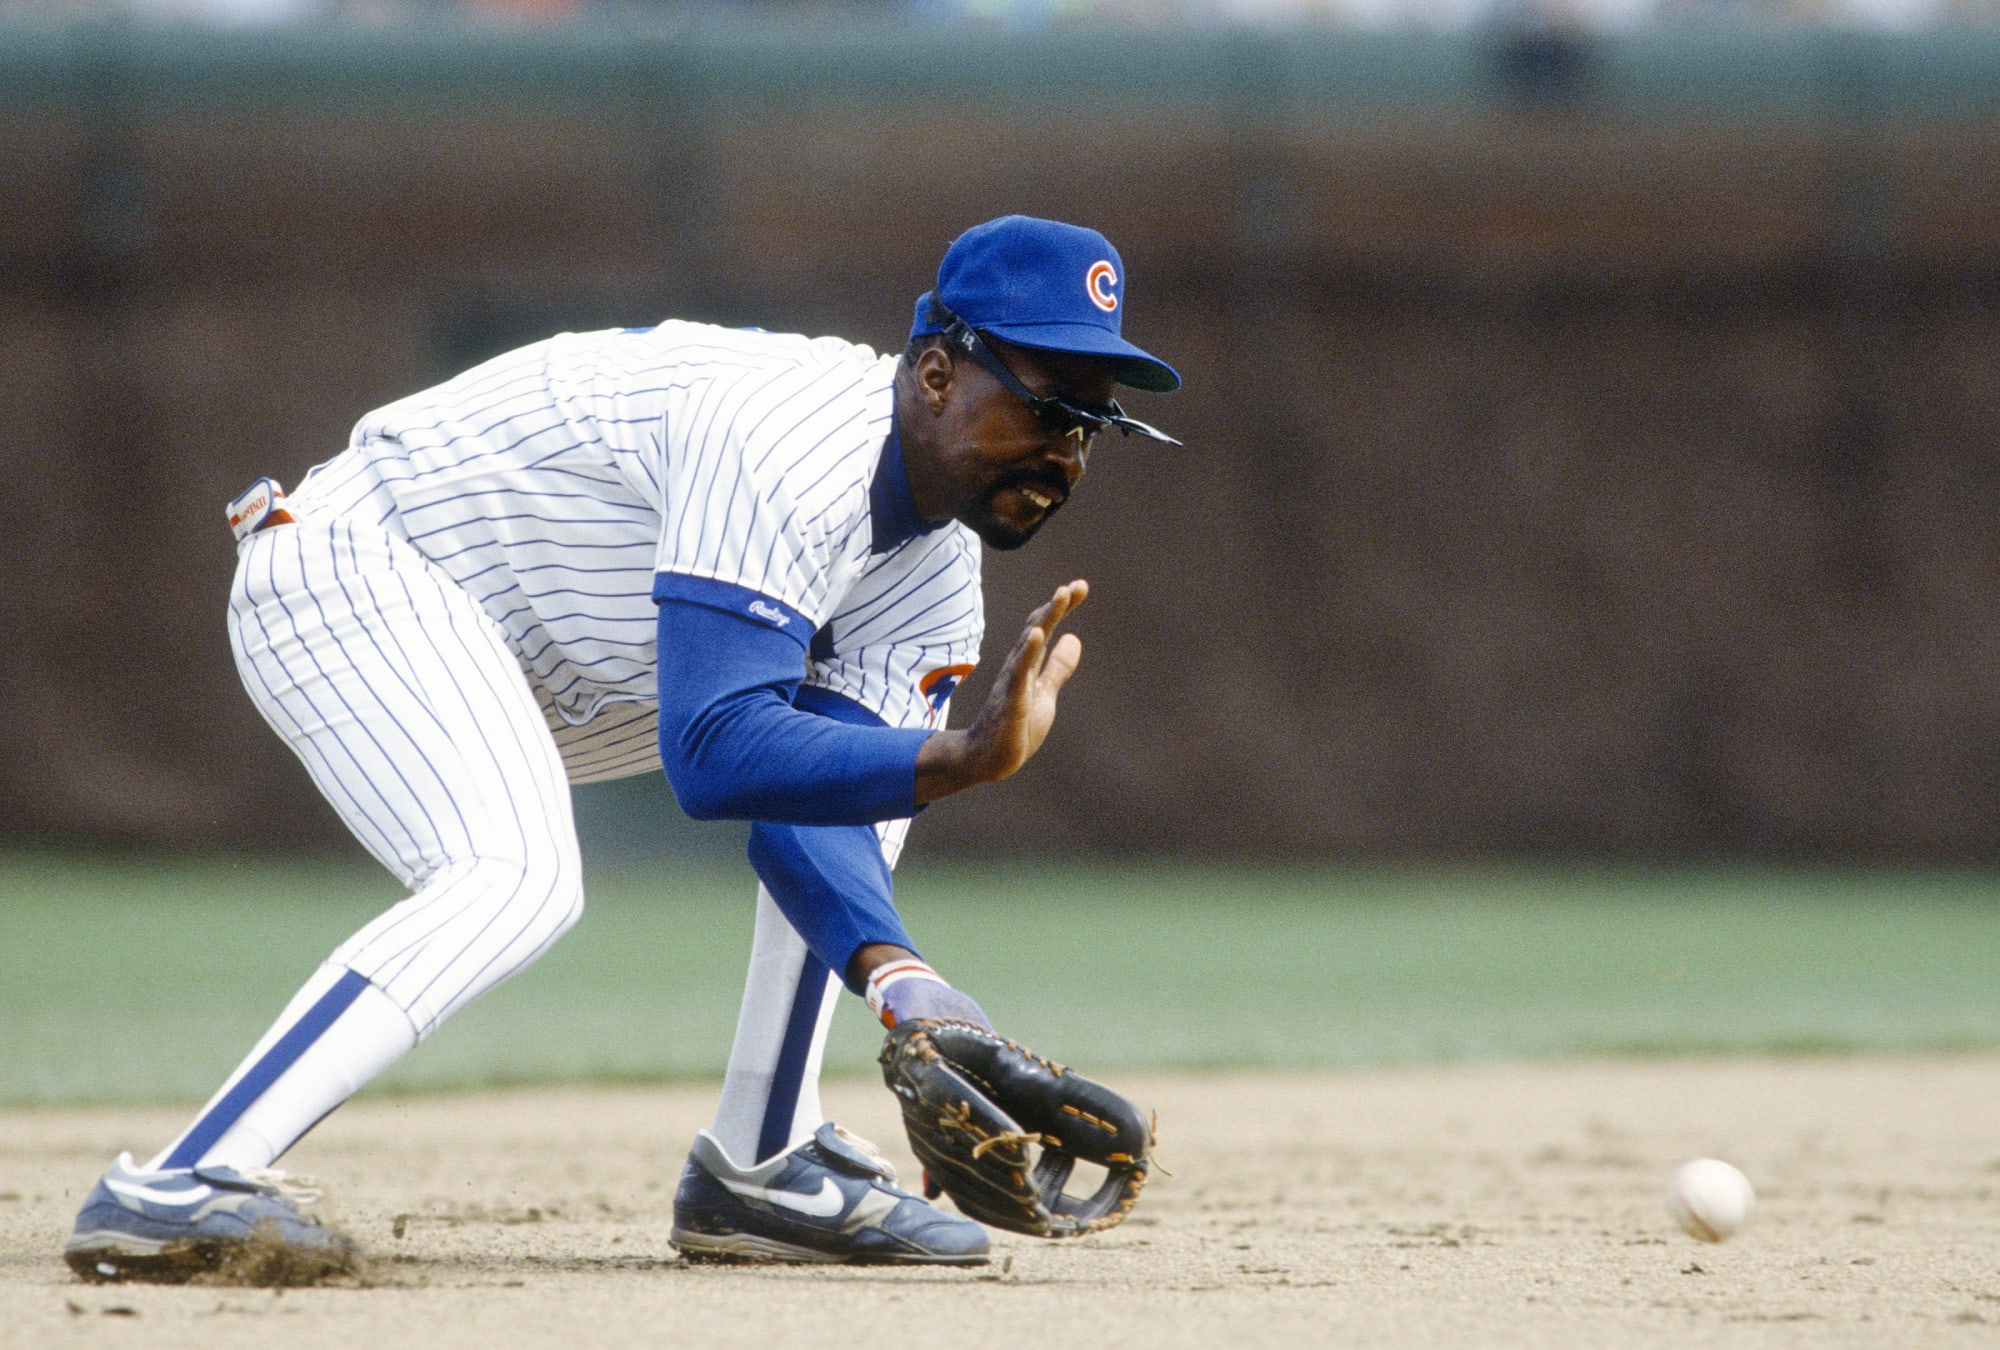 Chicago Cubs never got what they hoped for in Shawon Dunston